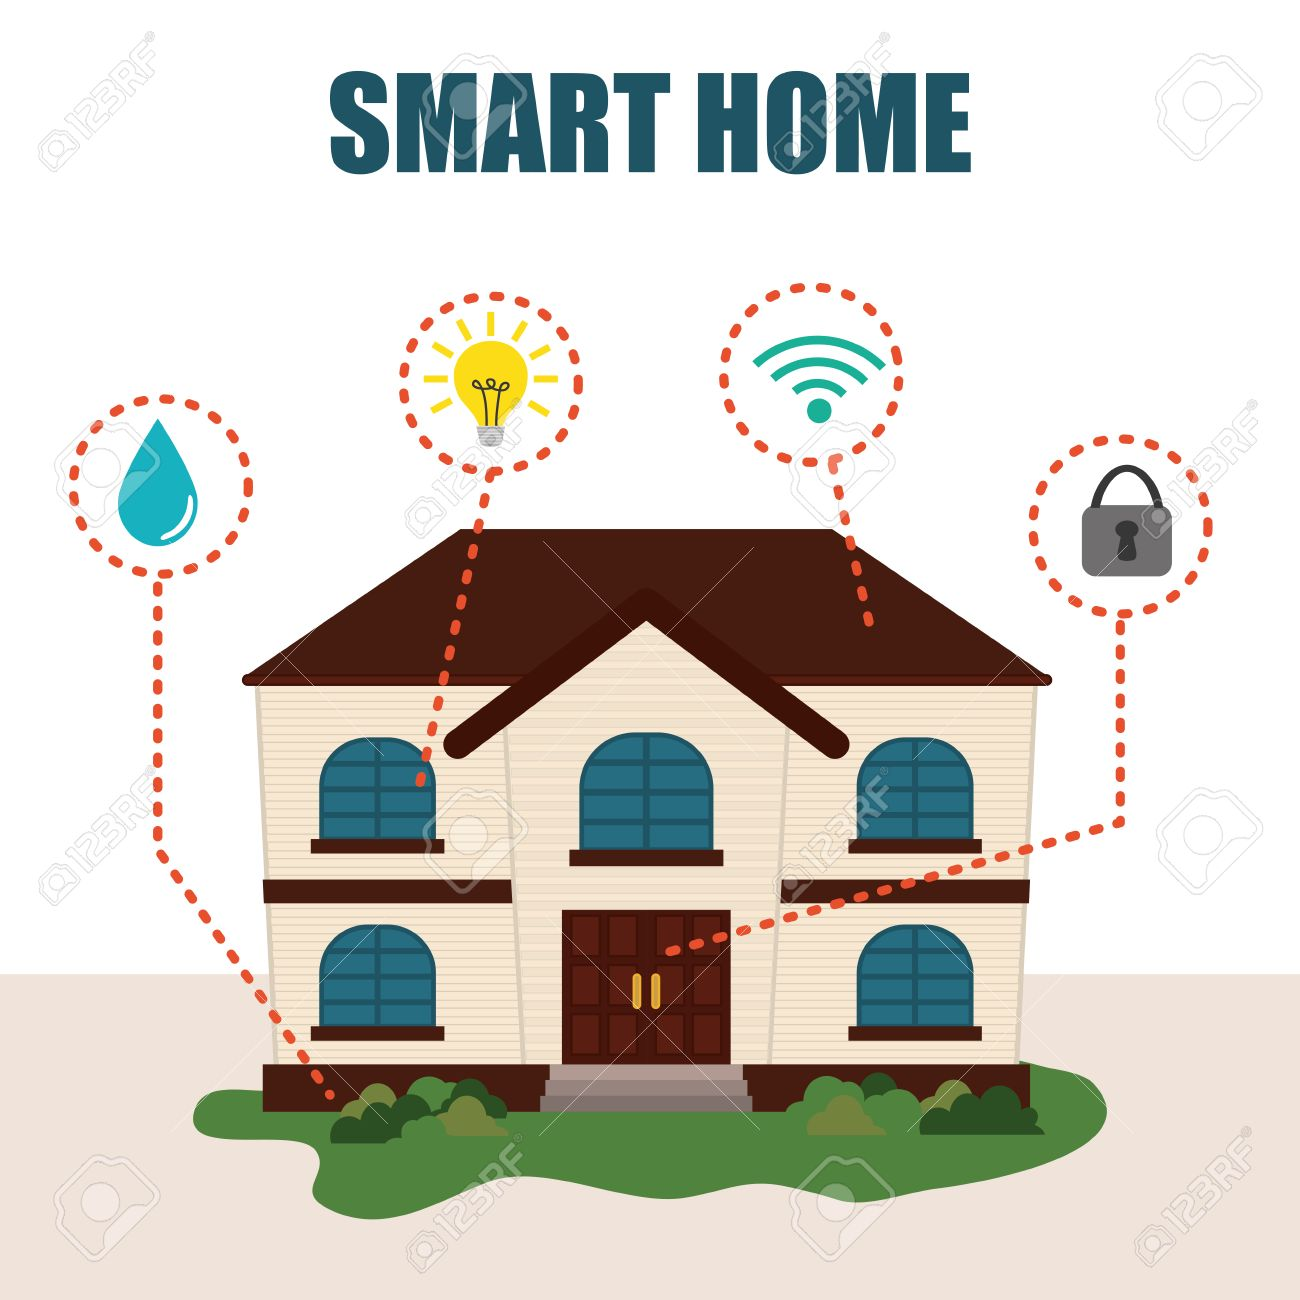 Smart Home Design Smart Home Green Wired Vector Smart Home Design Vector  Illustration Eps10 Graphic